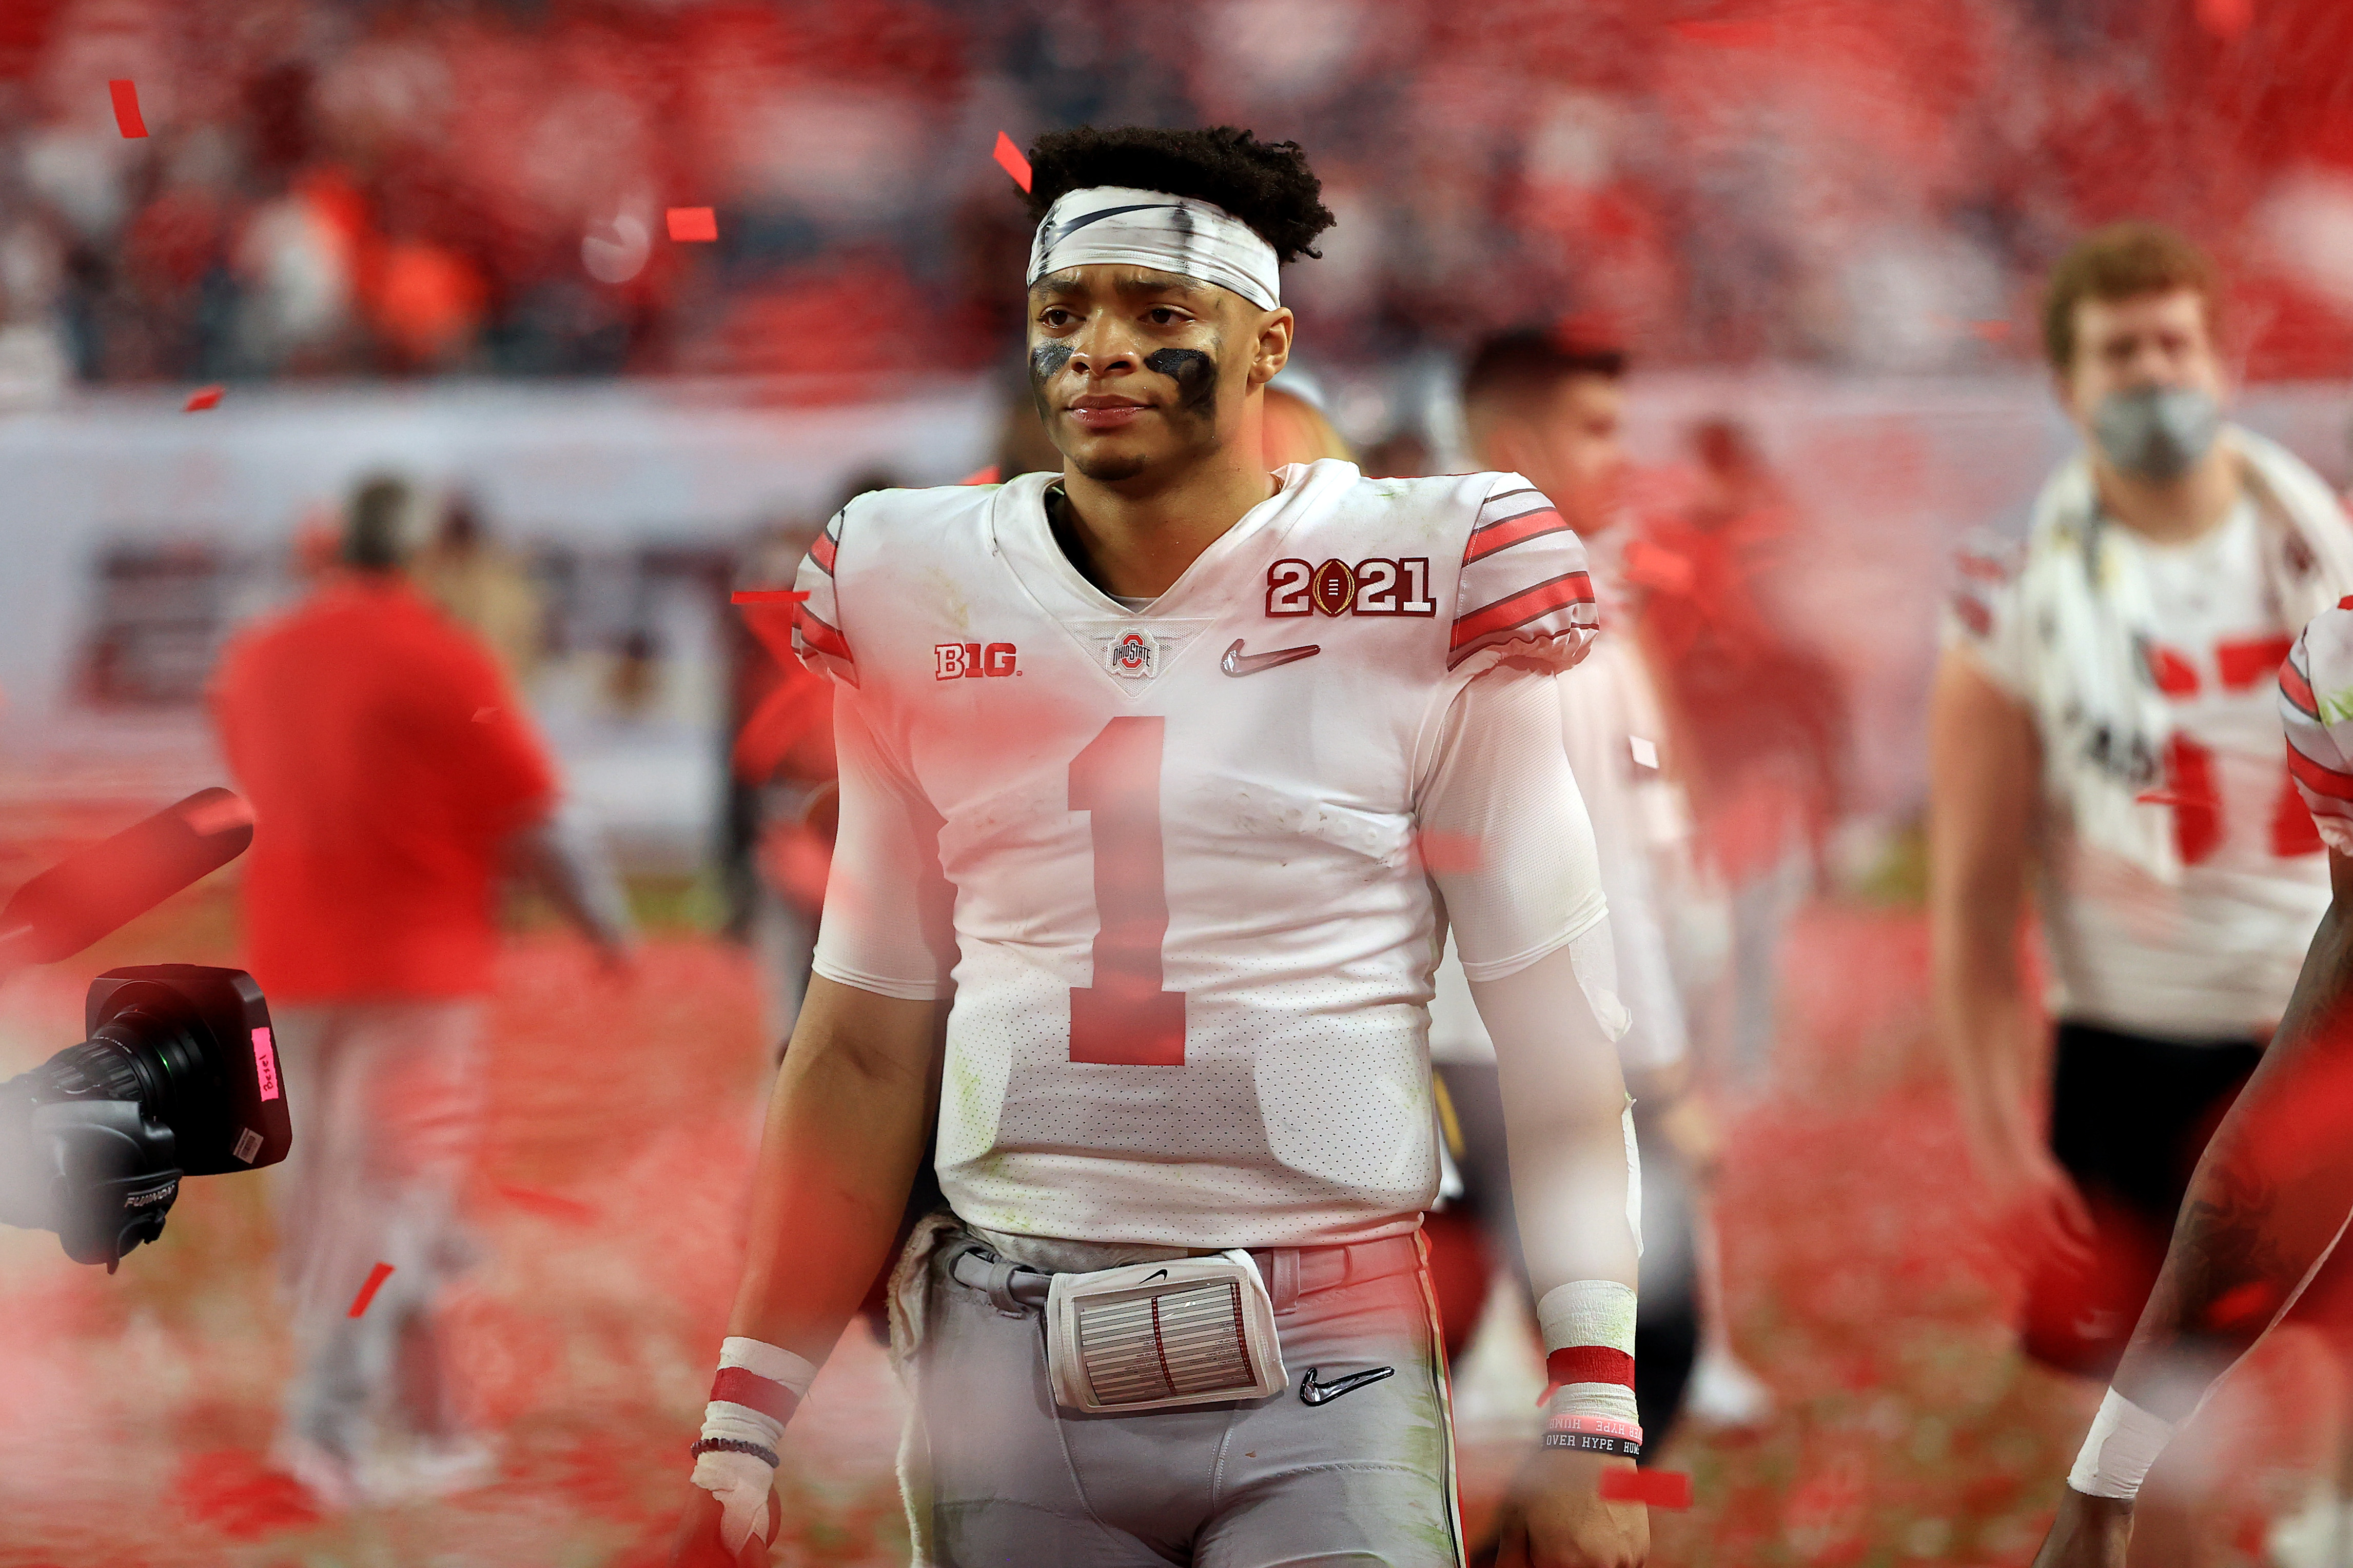 Justin Fields #1 of the Ohio State Buckeyes leaves the field following the College Football Playoff National Championship game against the Alabama Crimson Tide at Hard Rock Stadium on January 11, 2021 in Miami Gardens, Florida.